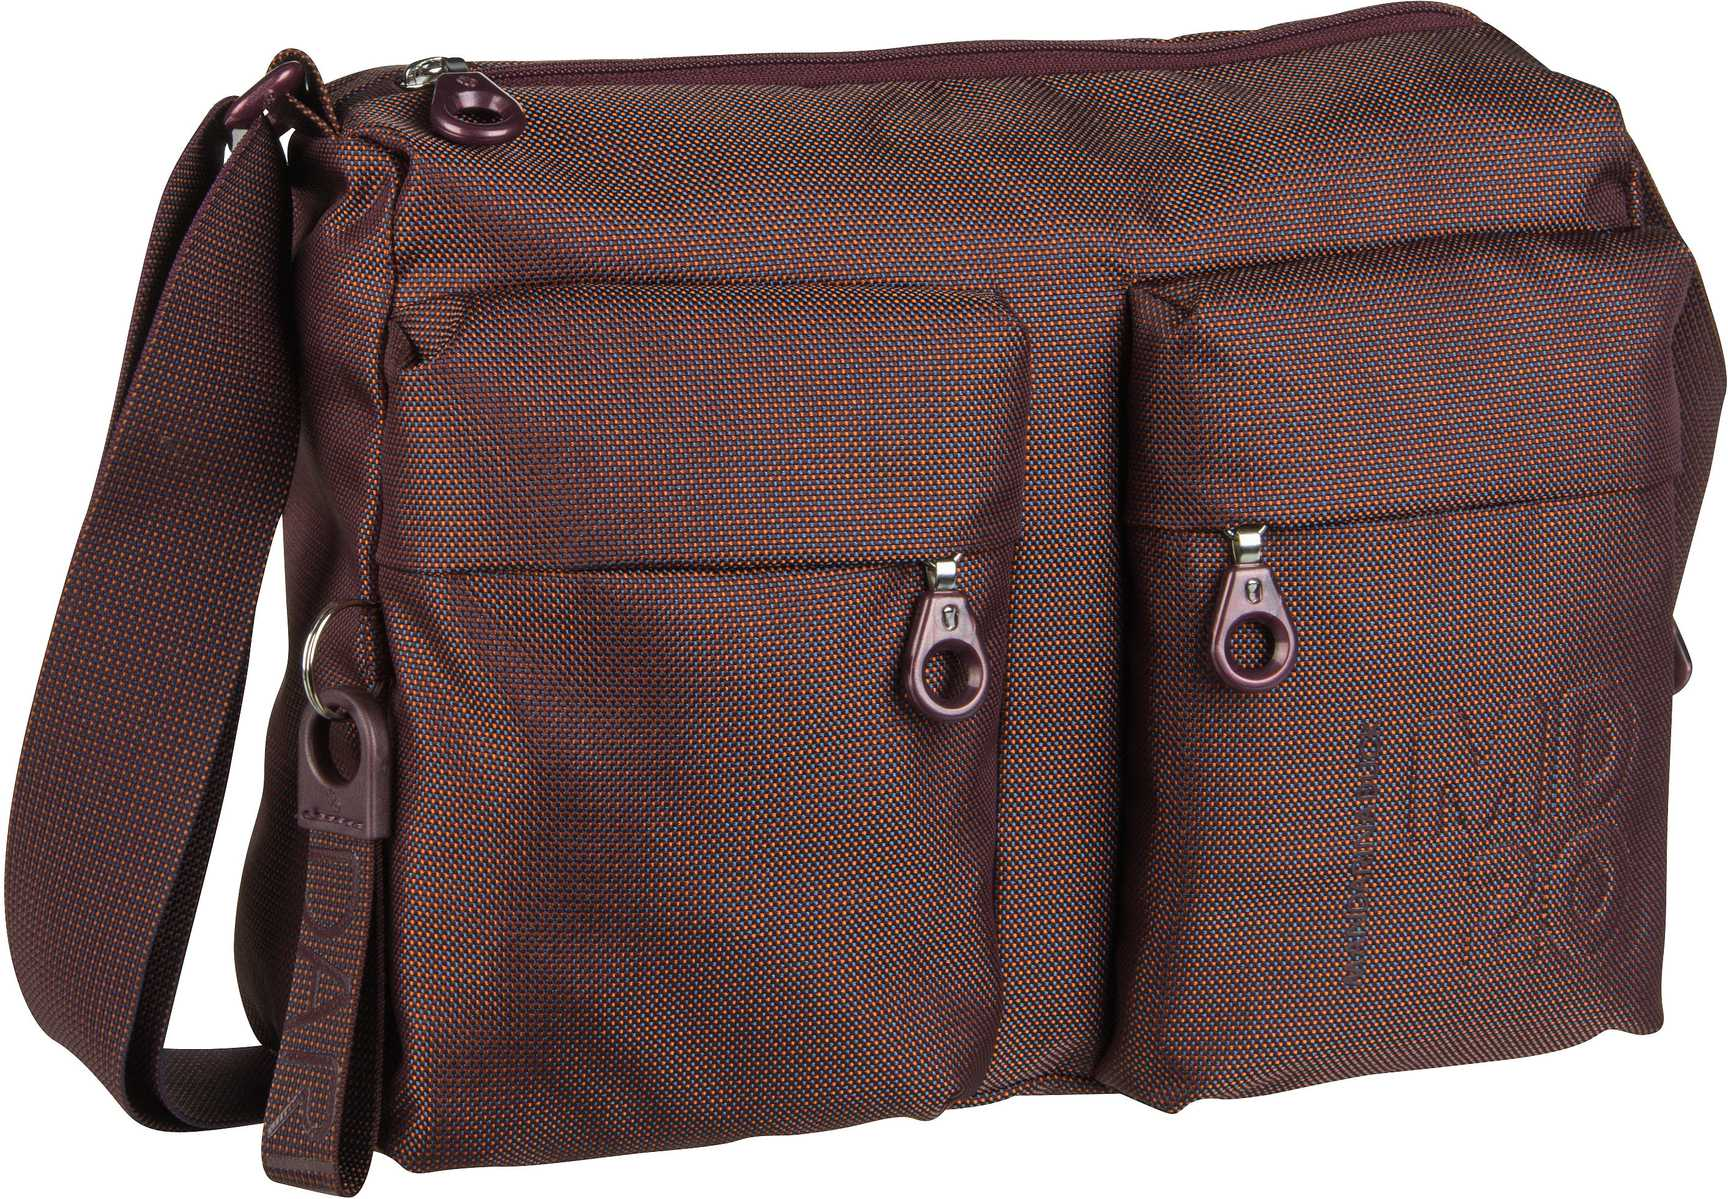 Umhängetasche MD20 Crossover Bag QMTT5 Balsamic